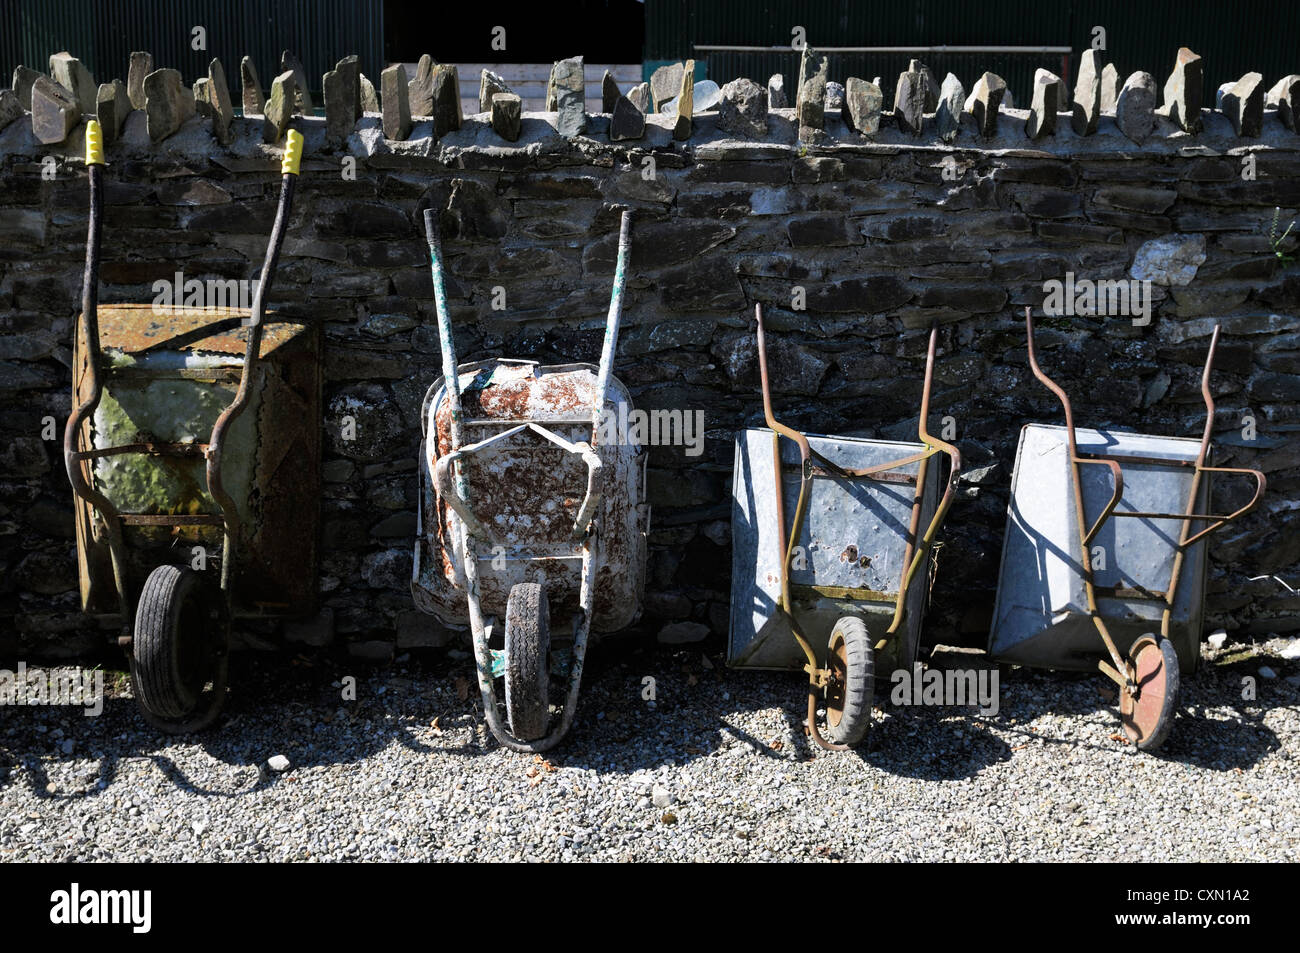 line of wheelbarrows stored upright outdoors against a wall garden gardening tool tools help assistance different - Stock Image